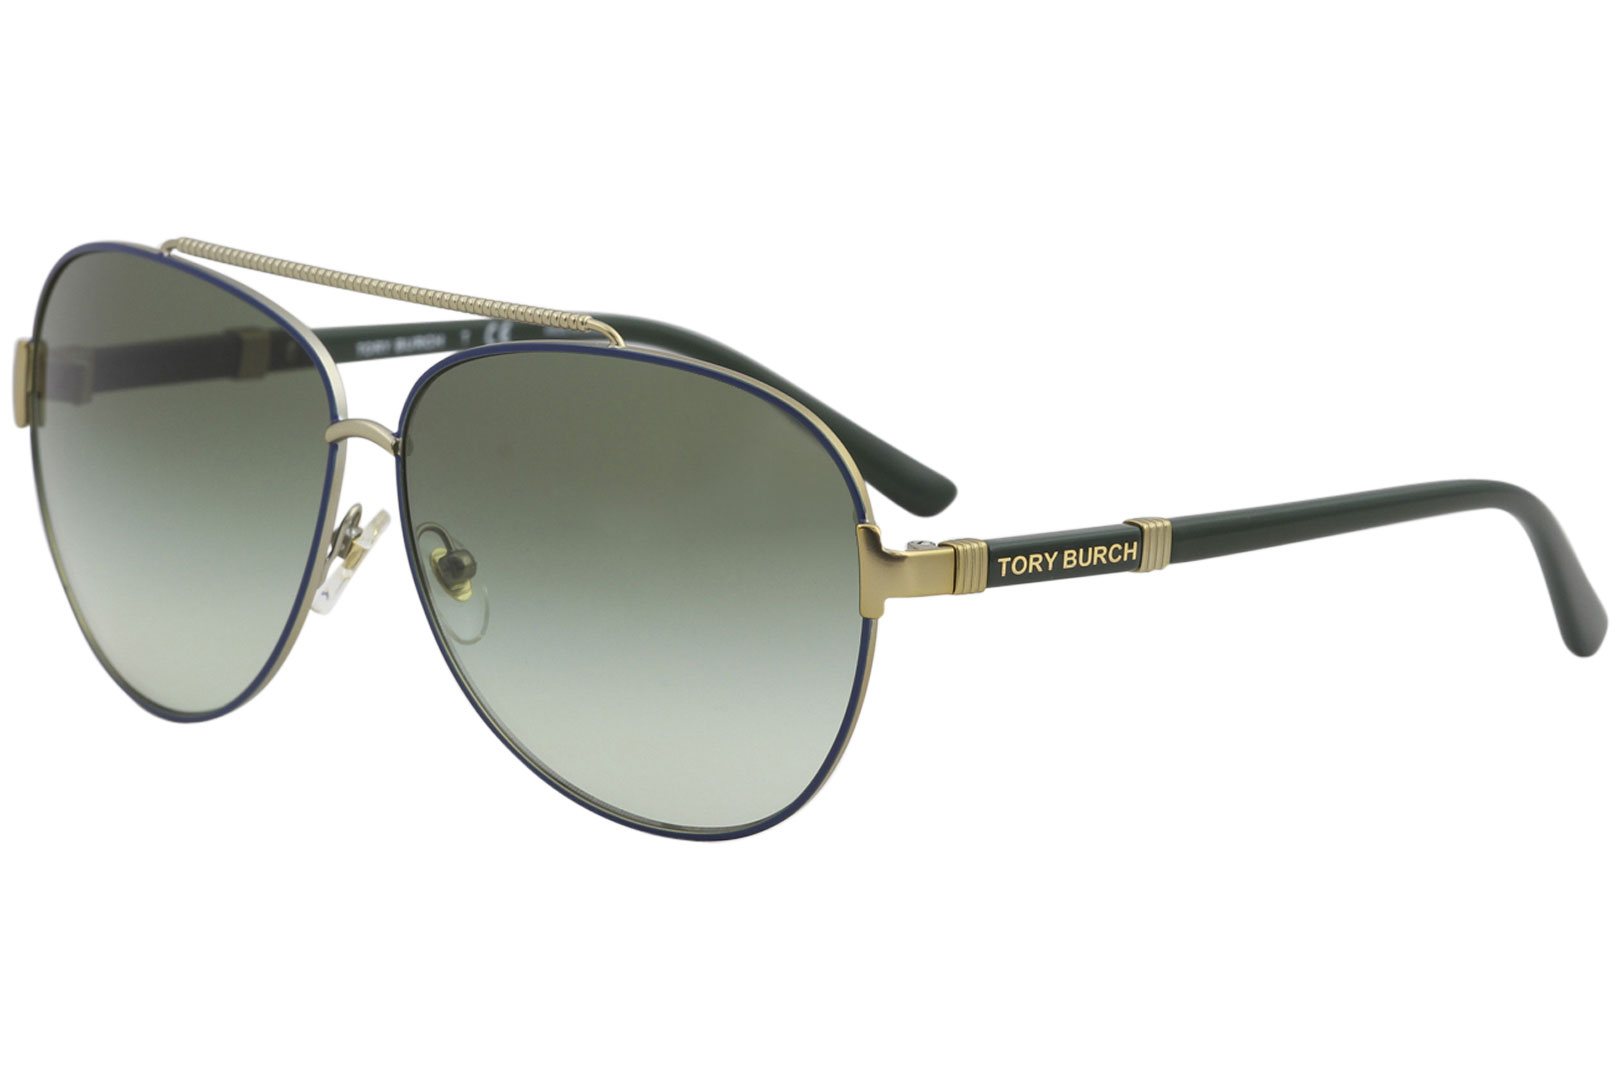 98a2ed5b49b Tory Burch Women s TY6056 TY 6056 3058 8E Navy Gold Pilot Sunglasses ...